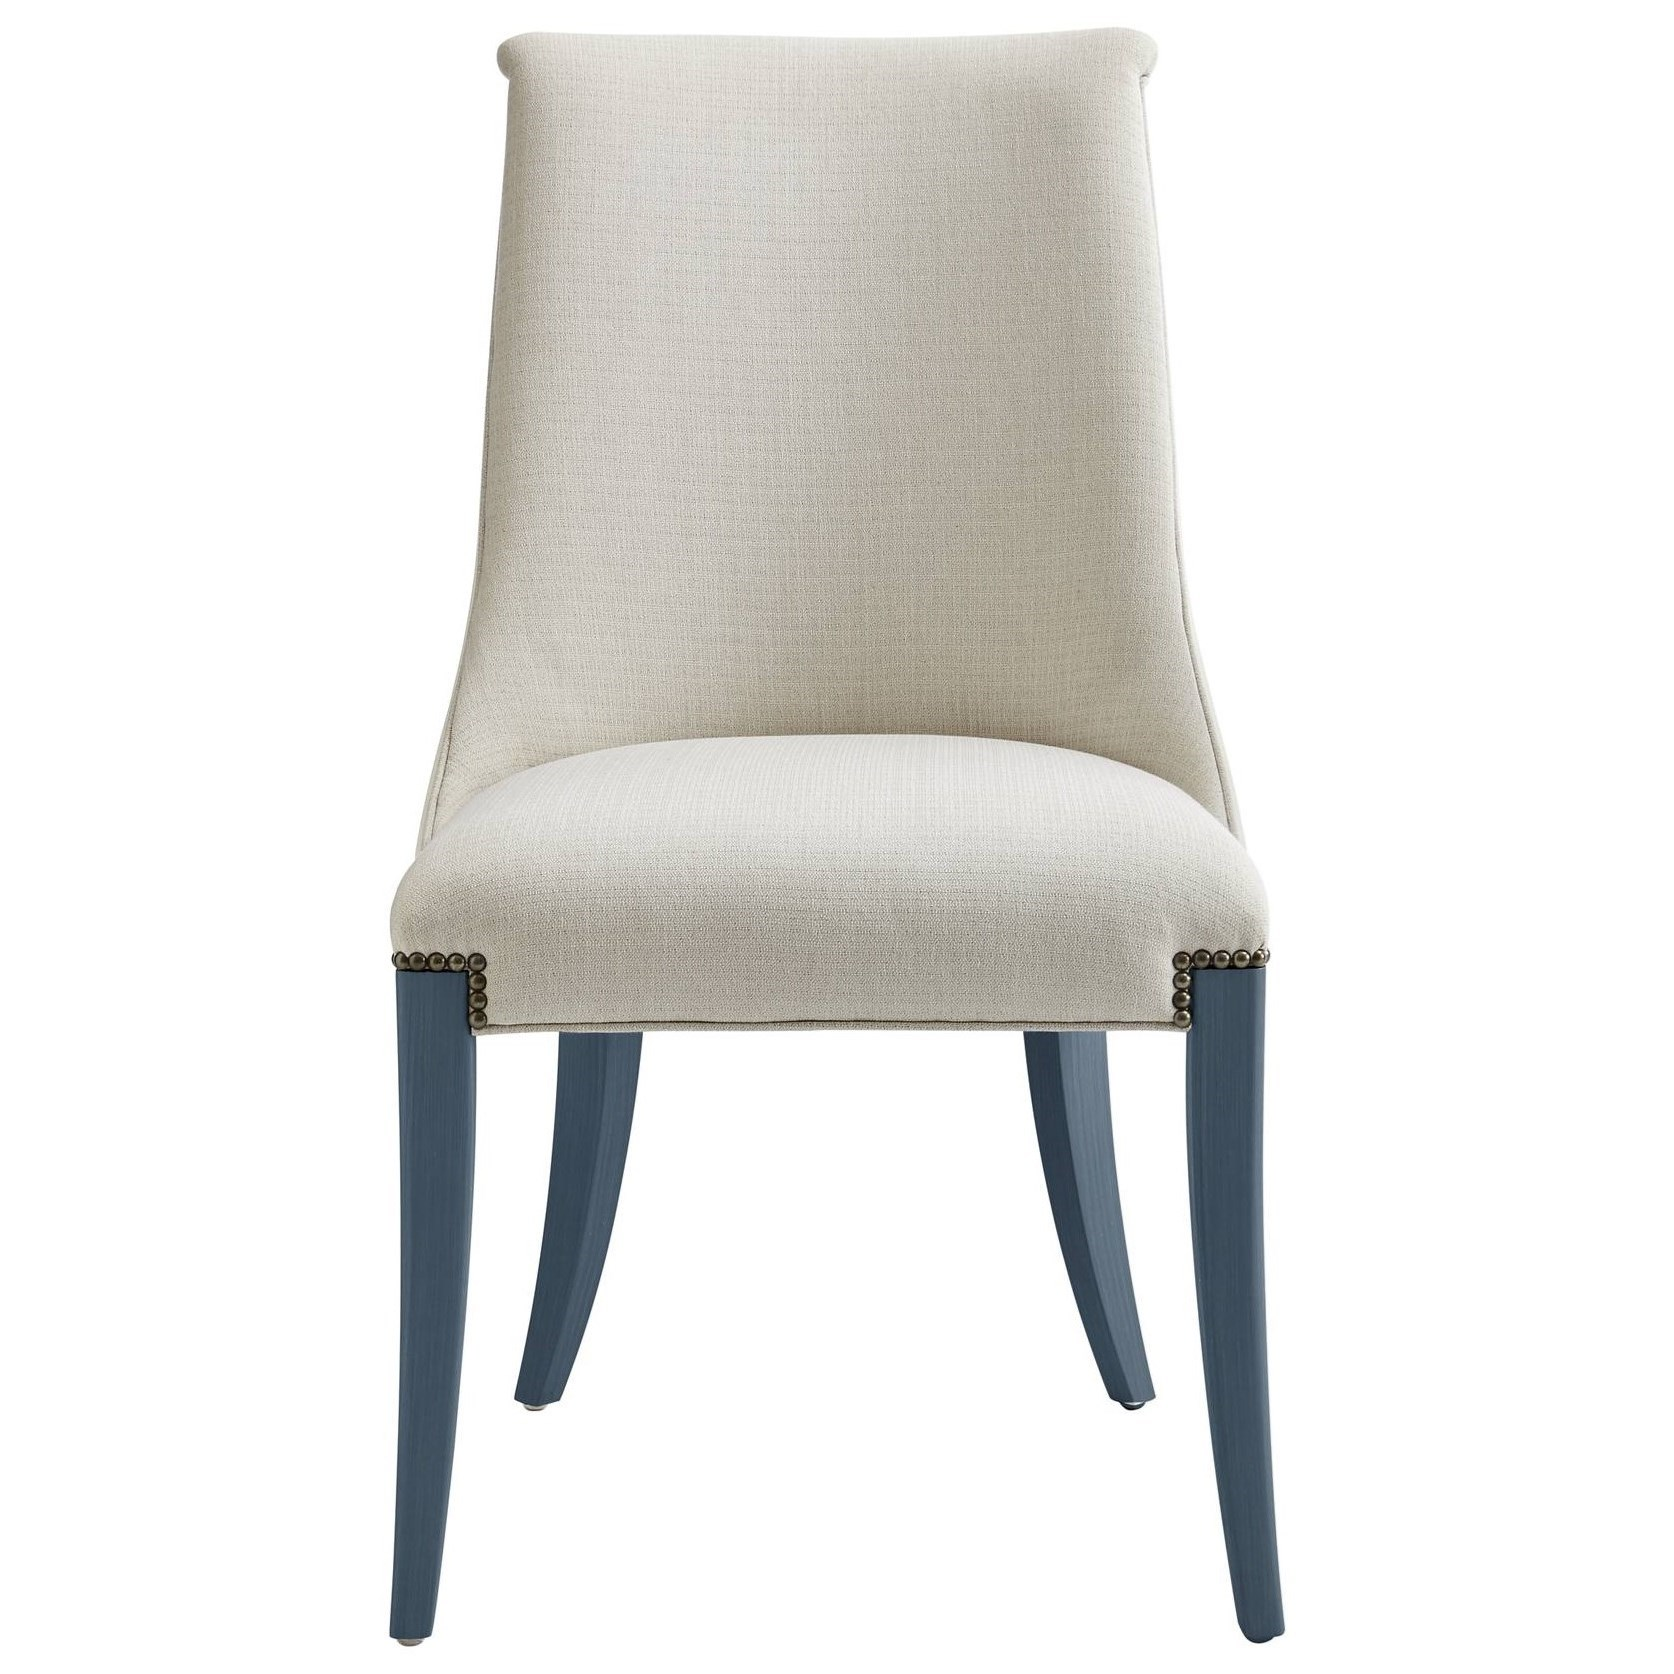 Stanley Furniture Coastal Living Oasis Wilshire Host Chair - Item Number: 527-41-75